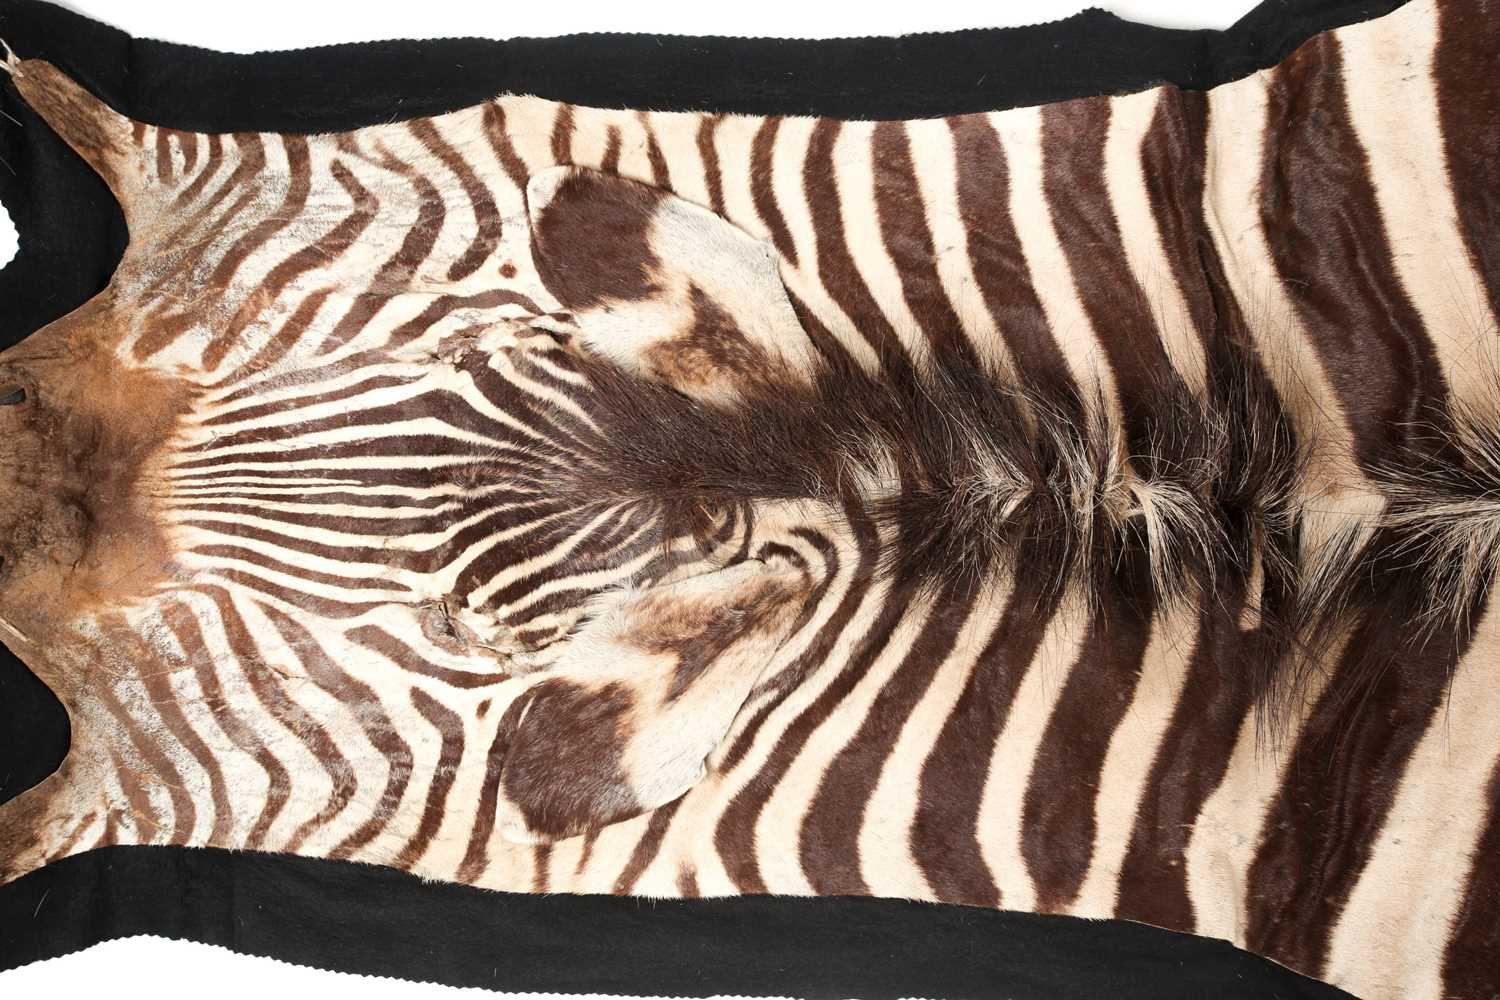 A large fabric-backed Zebra skin rug with an unblocked head. 285 cm long x 195 cm wideCondition - Image 3 of 3